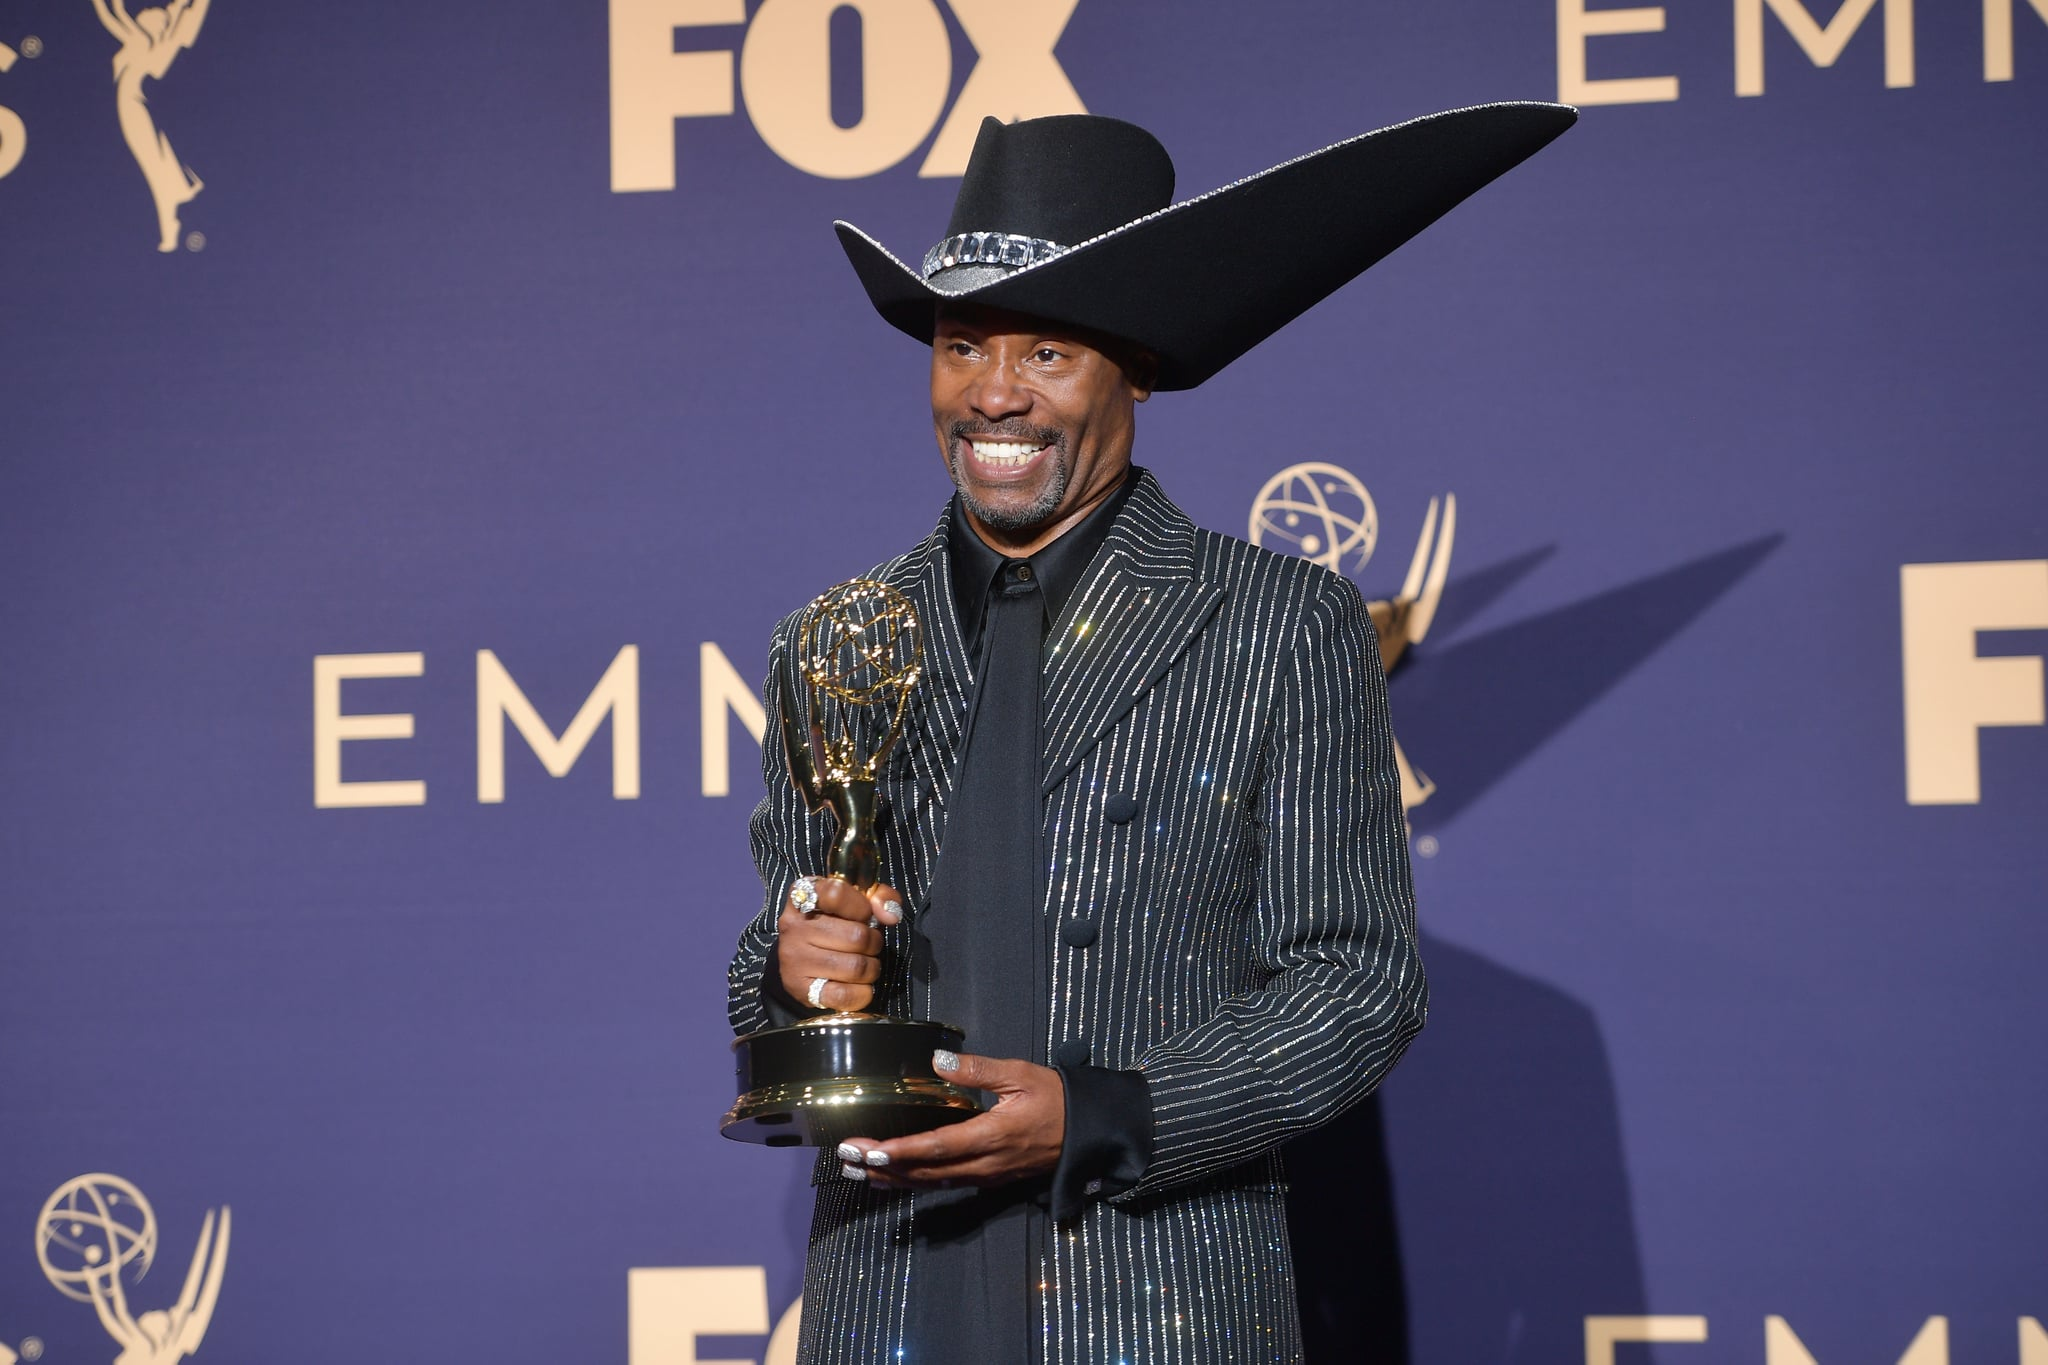 LOS ANGELES, CALIFORNIA - SEPTEMBER 22: Billy Porter poses with award for Outstanding Lead Actor in a Drama Series in the press room during the 71st Emmy Awards at Microsoft Theater on September 22, 2019 in Los Angeles, California. (Photo by Matt Winkelmeyer/FilmMagic)